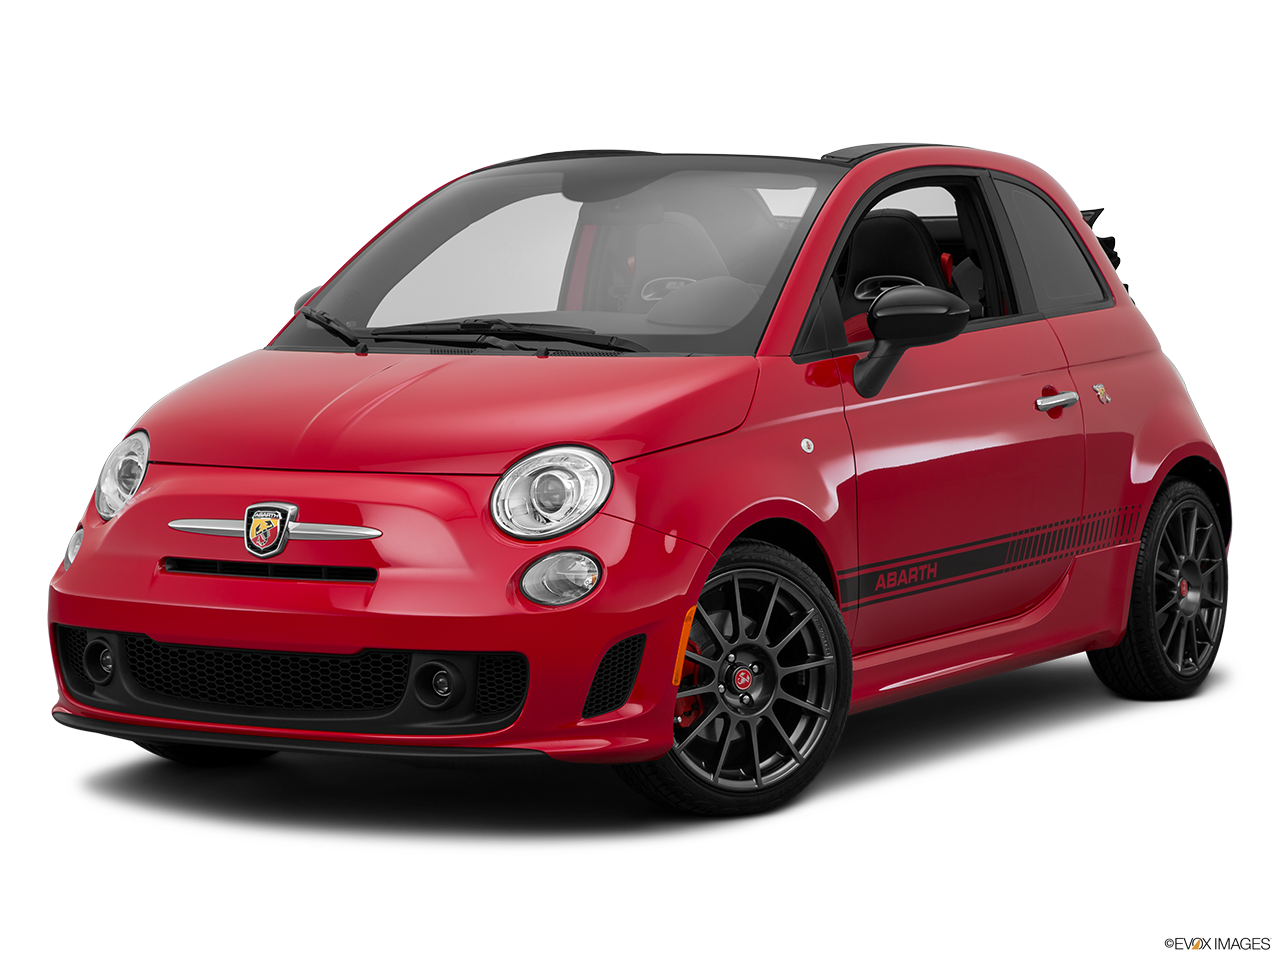 2015 fiat 500c west palm beach arrigo fiat west palm beach. Black Bedroom Furniture Sets. Home Design Ideas